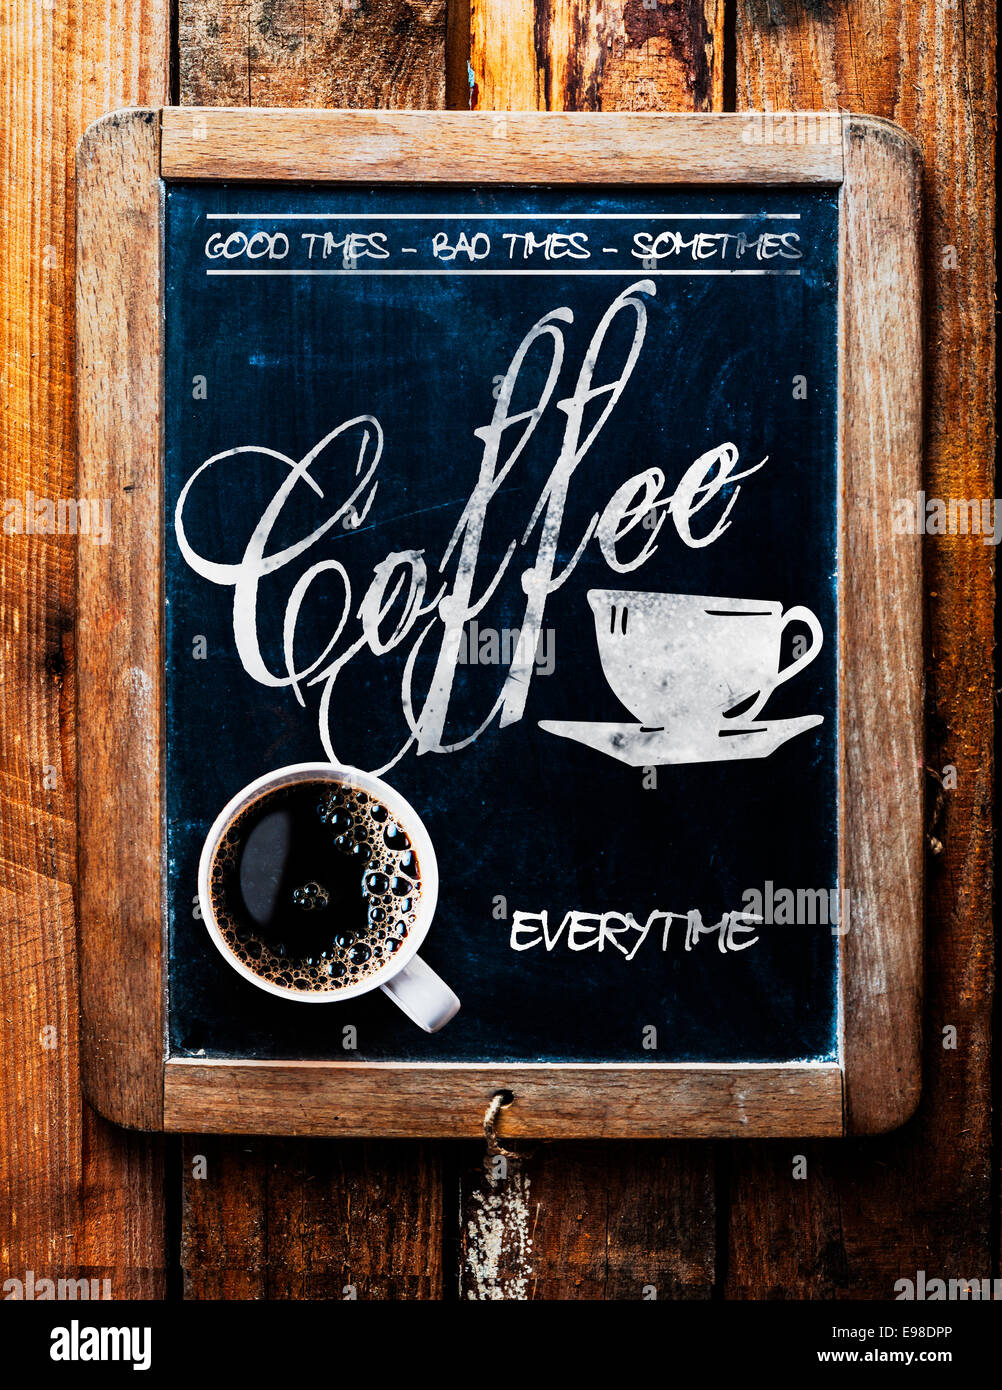 Cup of espresso coffee on a catchy sign saying - Good times, Bad times, Sometimes - Coffee Everytime - on an old - Stock Image